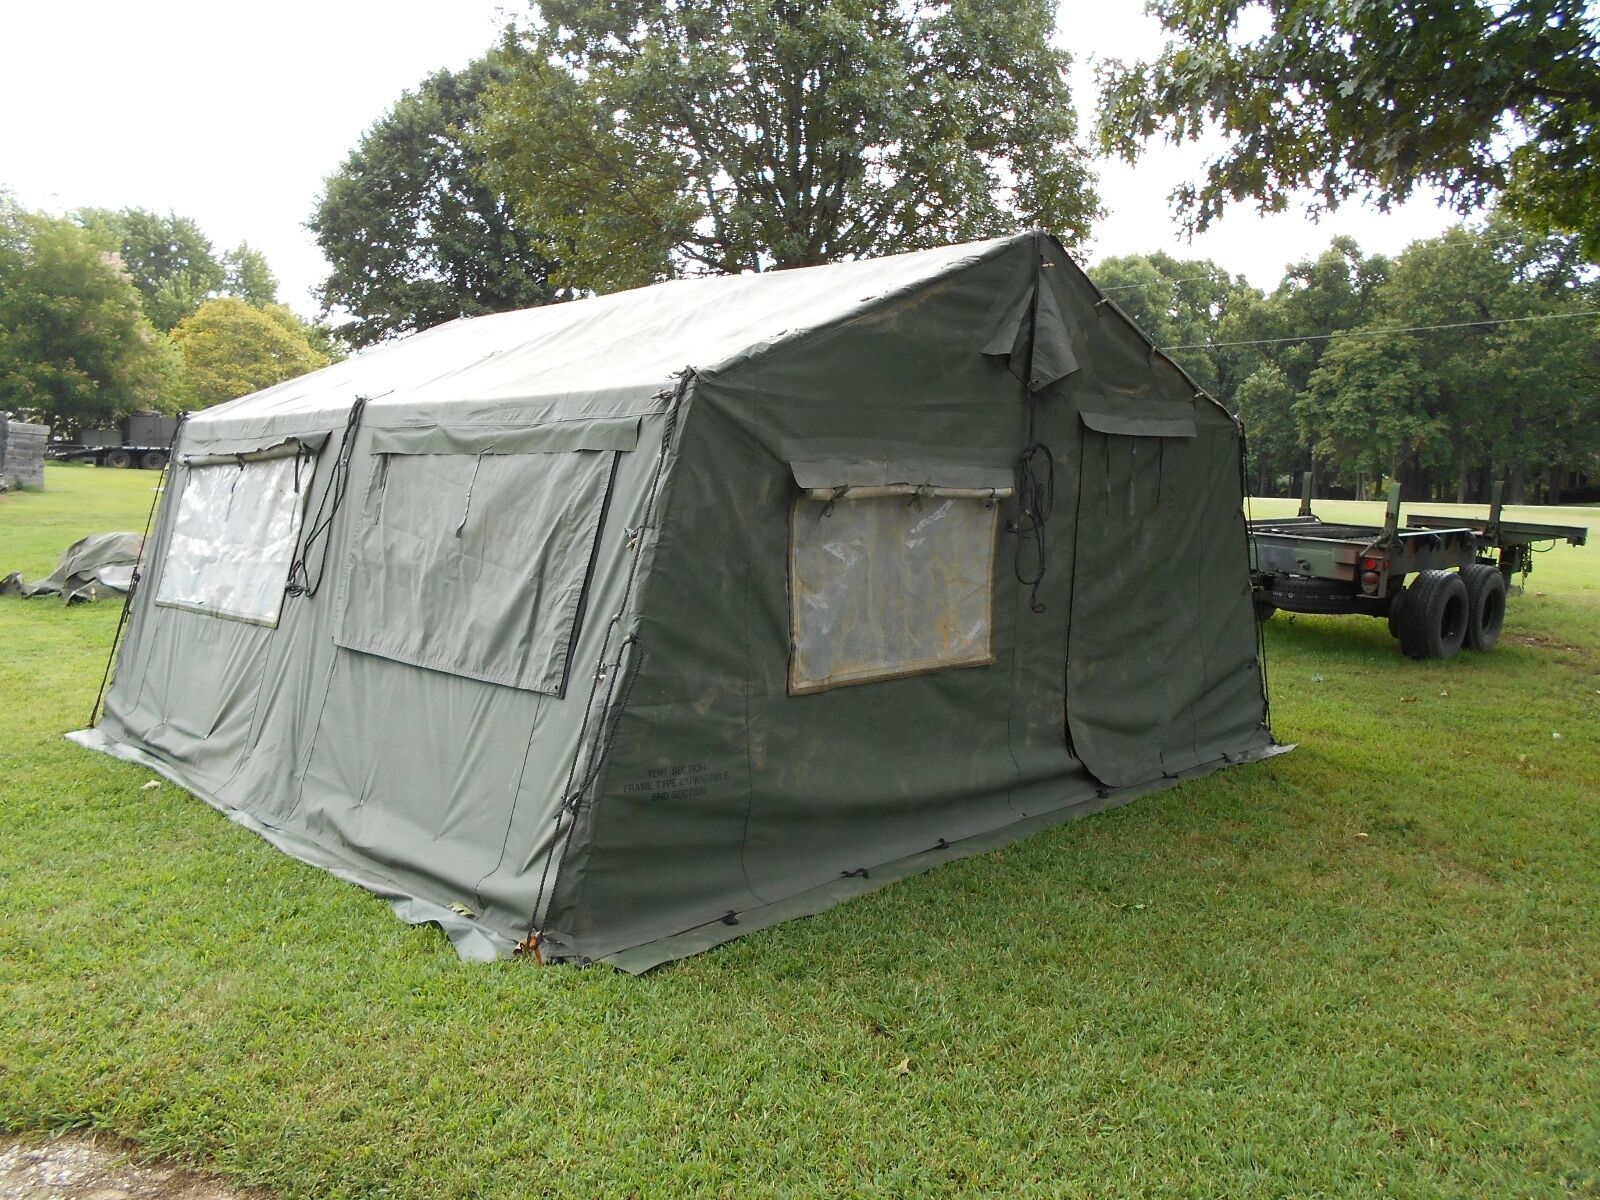 MILITARY 16x16 FRAME TENT CAMPING HUNTING ARMY VINYL CANVAS STOVE JACK SURPLUS 10074